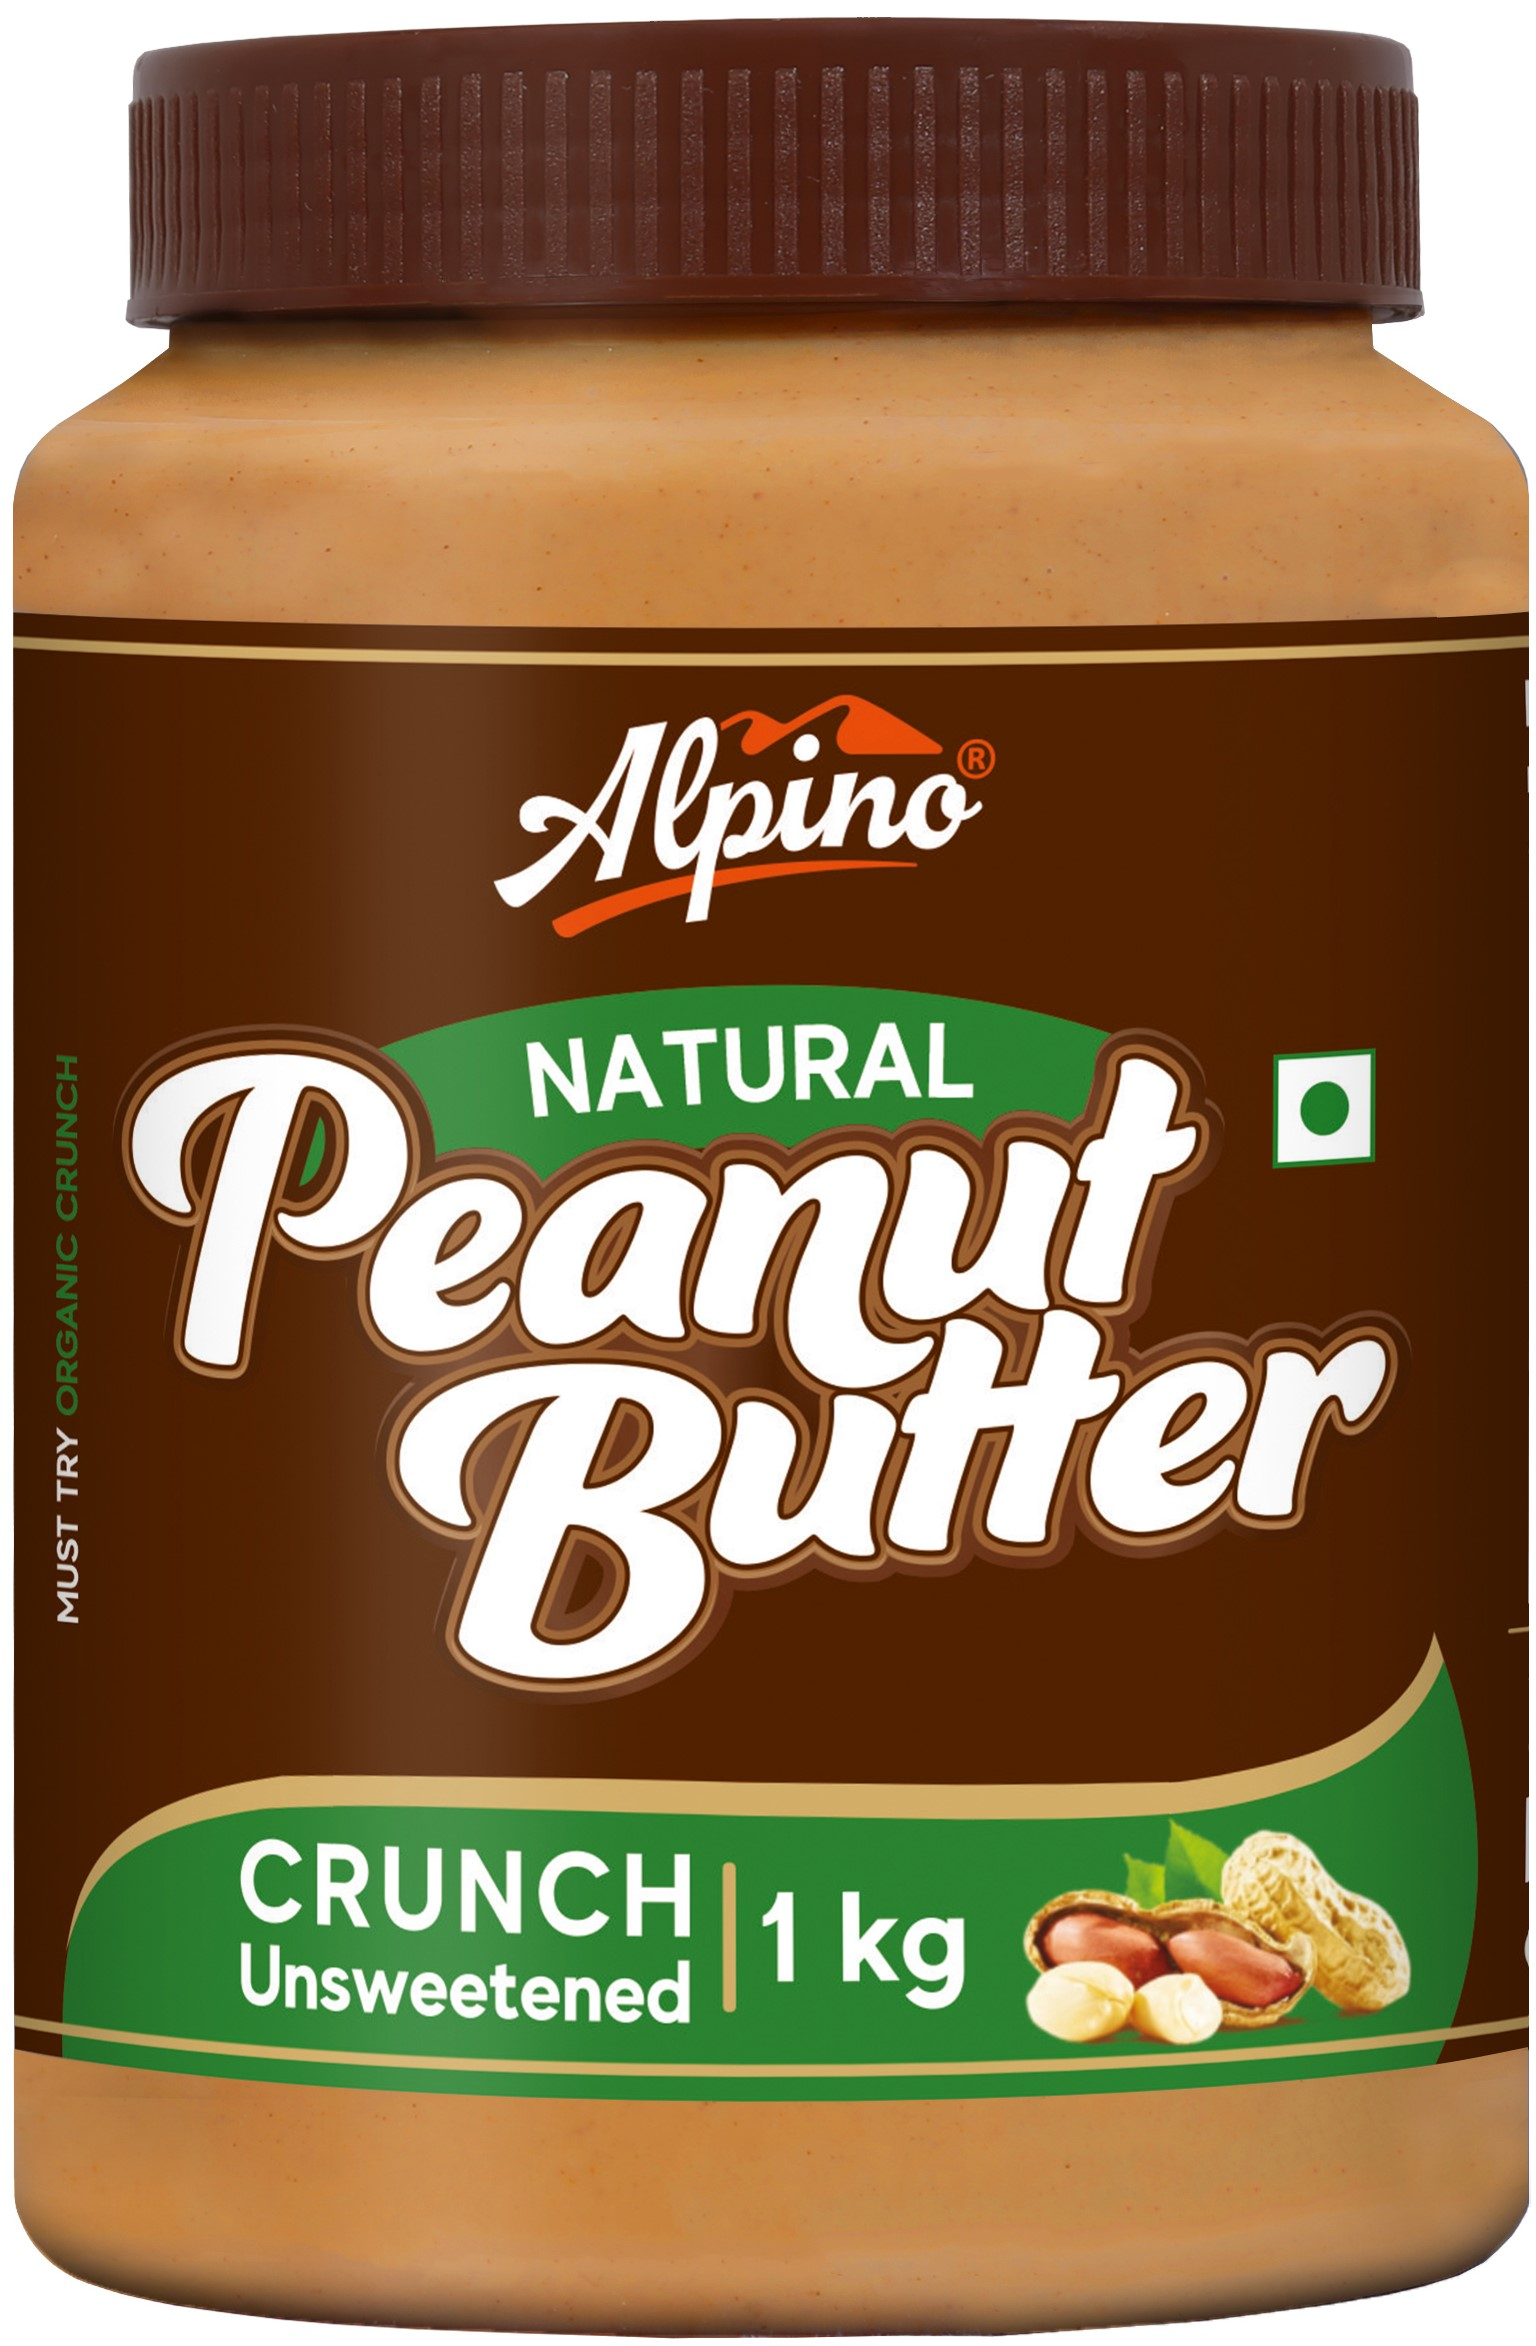 ALPINO NATURAL PEANUT BUTTER CRUNCH 1 KG (UNSWEETENED)